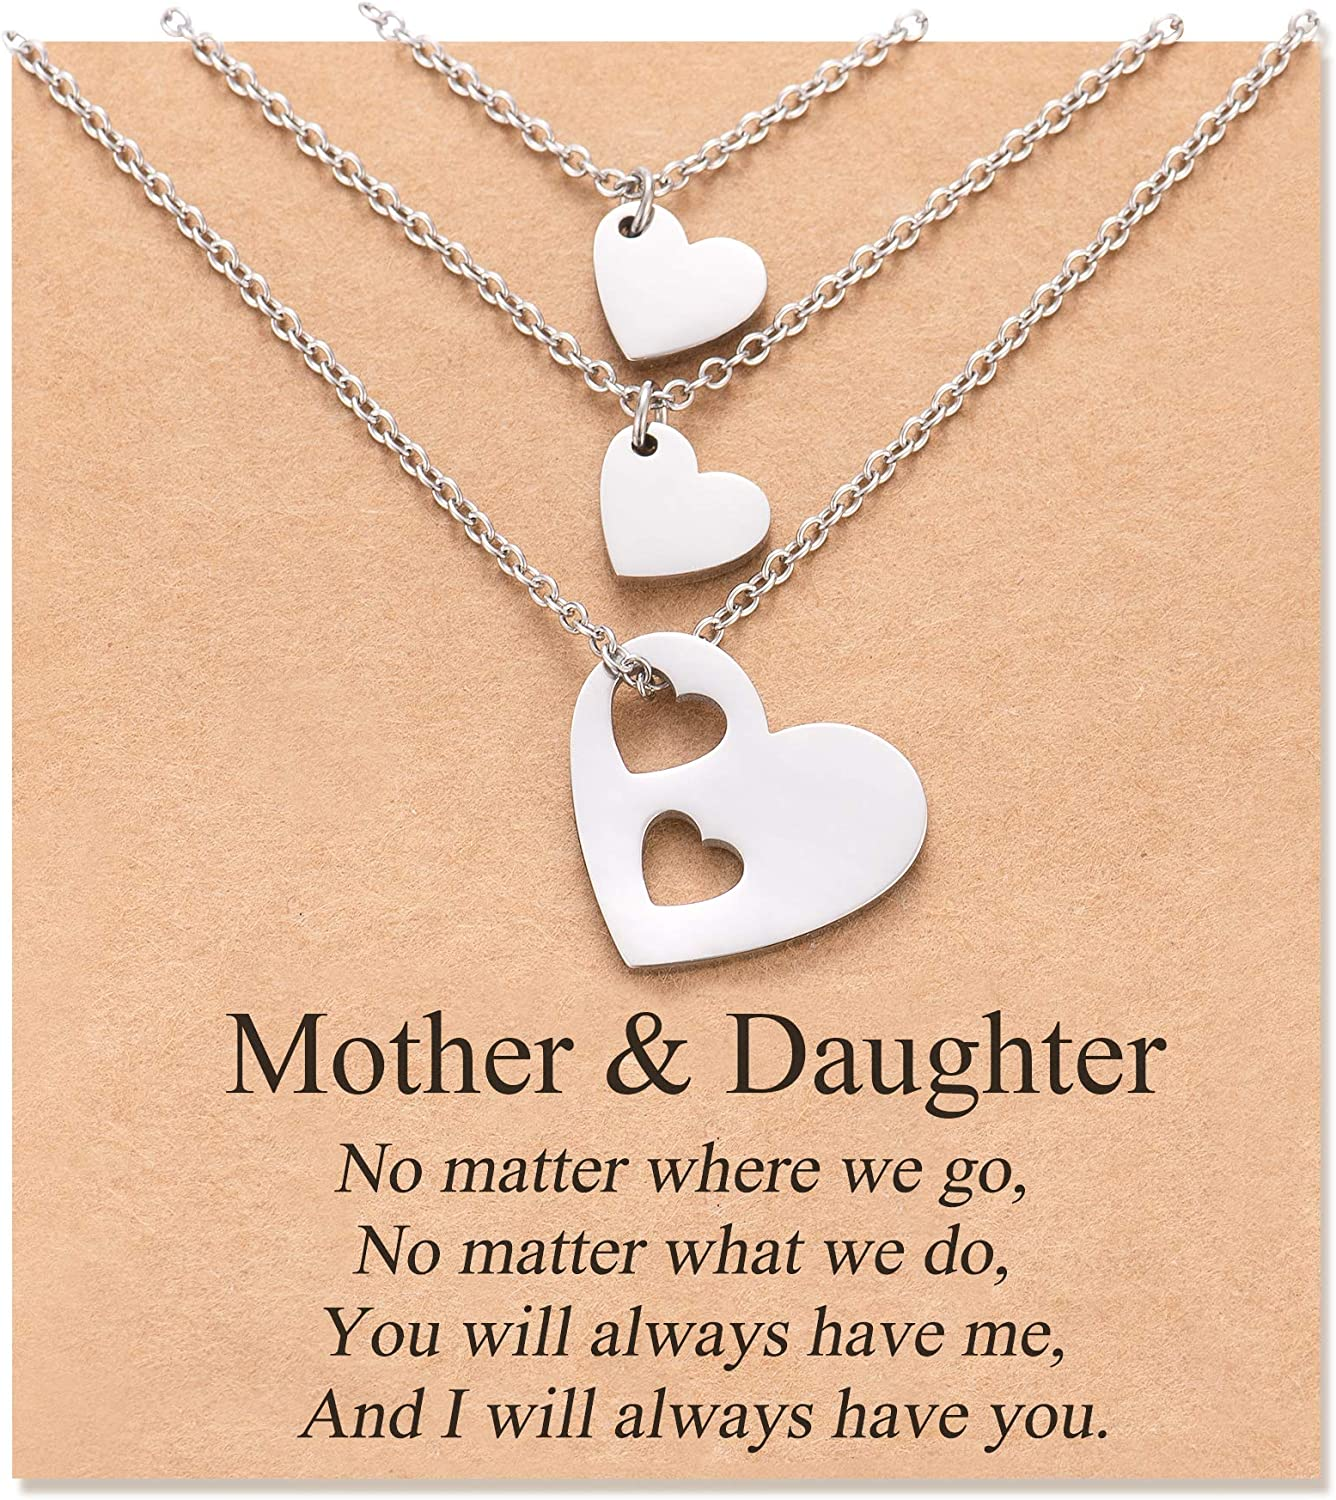 MANVEN Mother Daughter Necklace Set for 2 Mom Deluxe Daugh 3 Gifts Bombing new work from